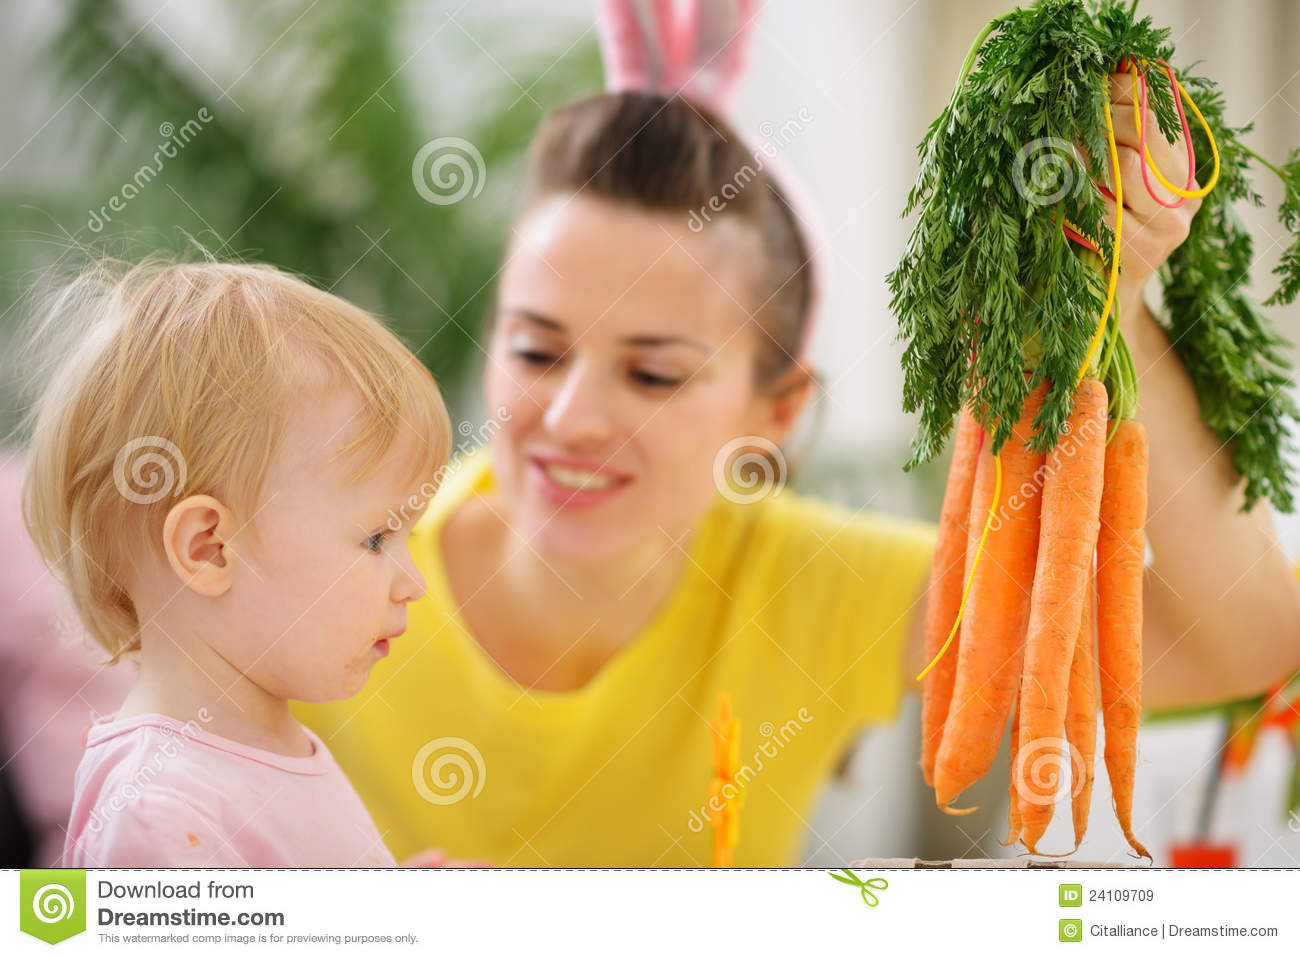 Woman washing carrots royalty free stock images apps